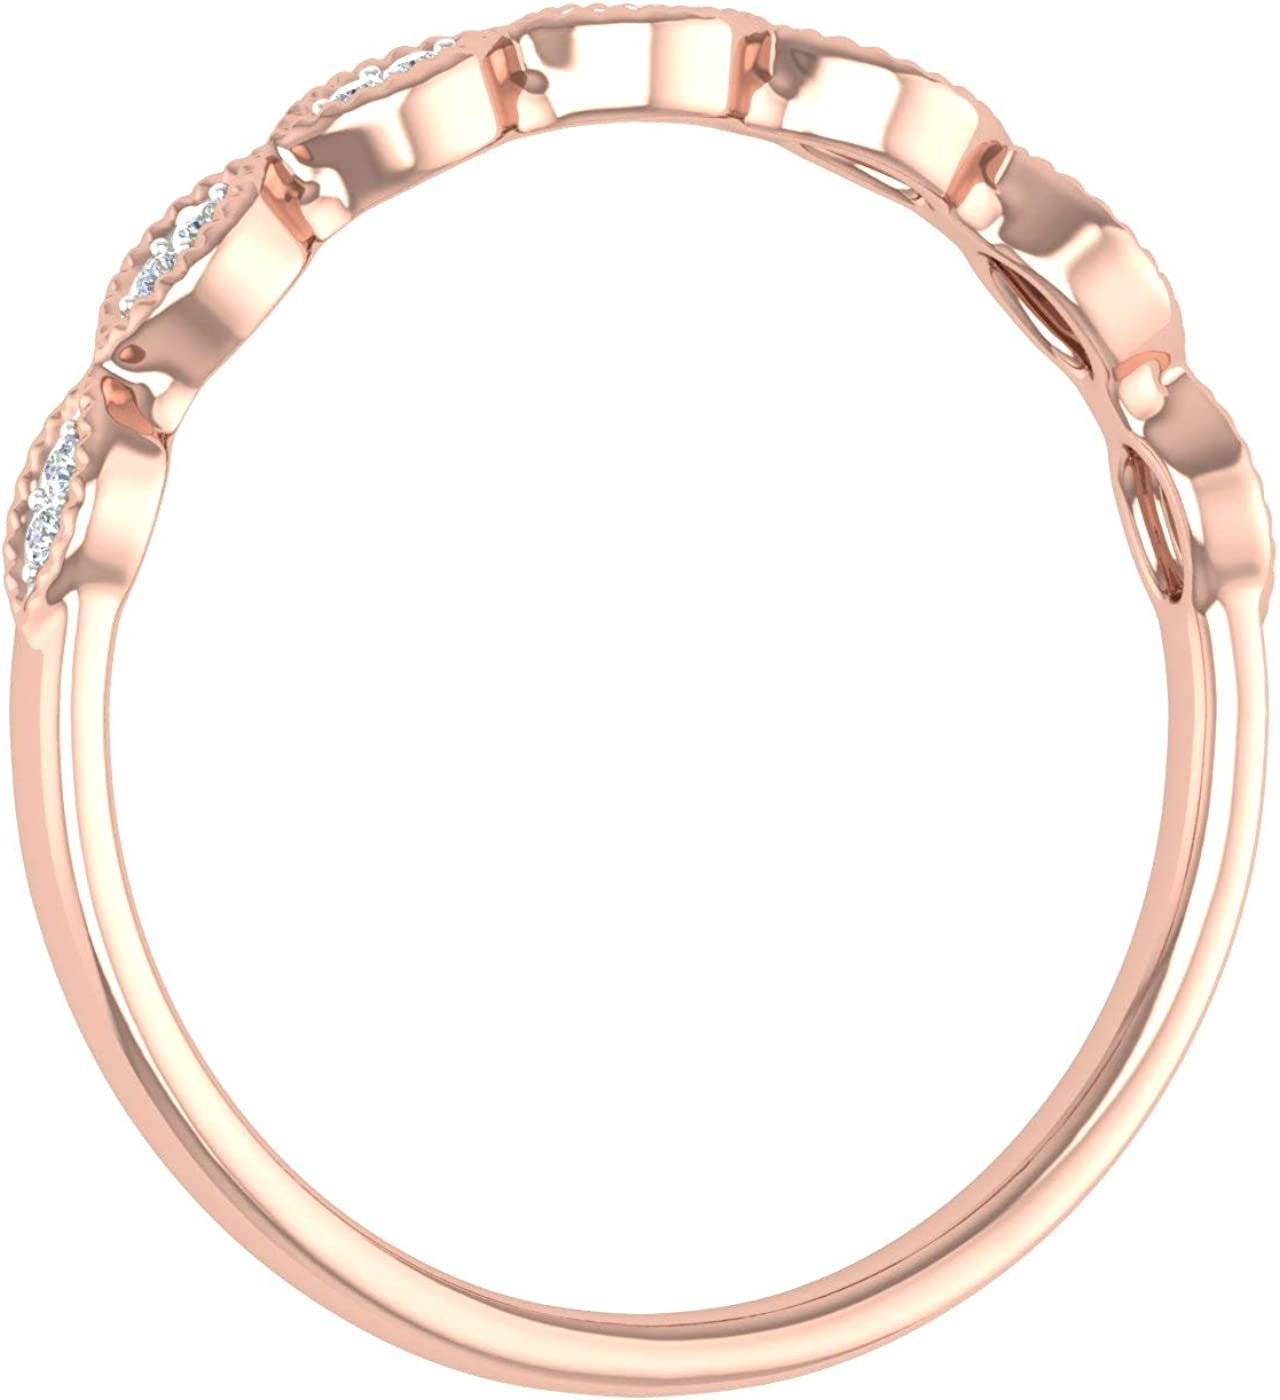 0.04 Carat Anniversary Wedding Band Ring in 10K Solid Gold